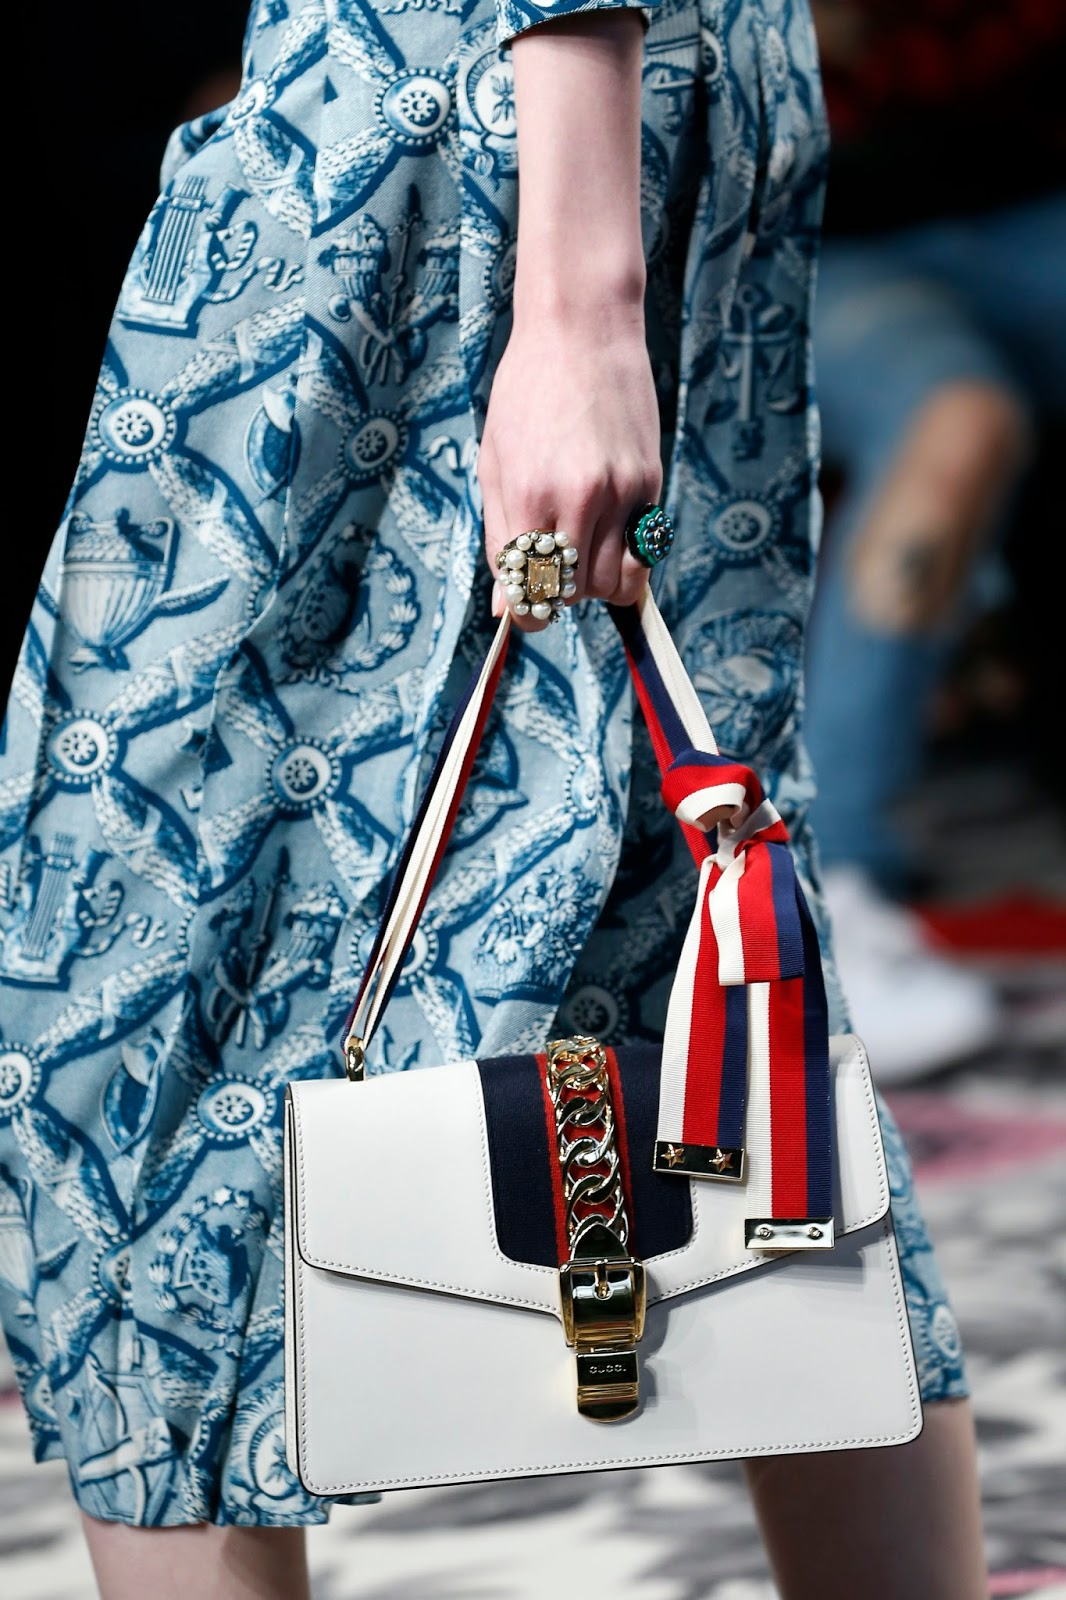 Spring/Summer 2016 trend report /Gucci SS16 / ribbons & bows via www.fashionedbylove.co.uk